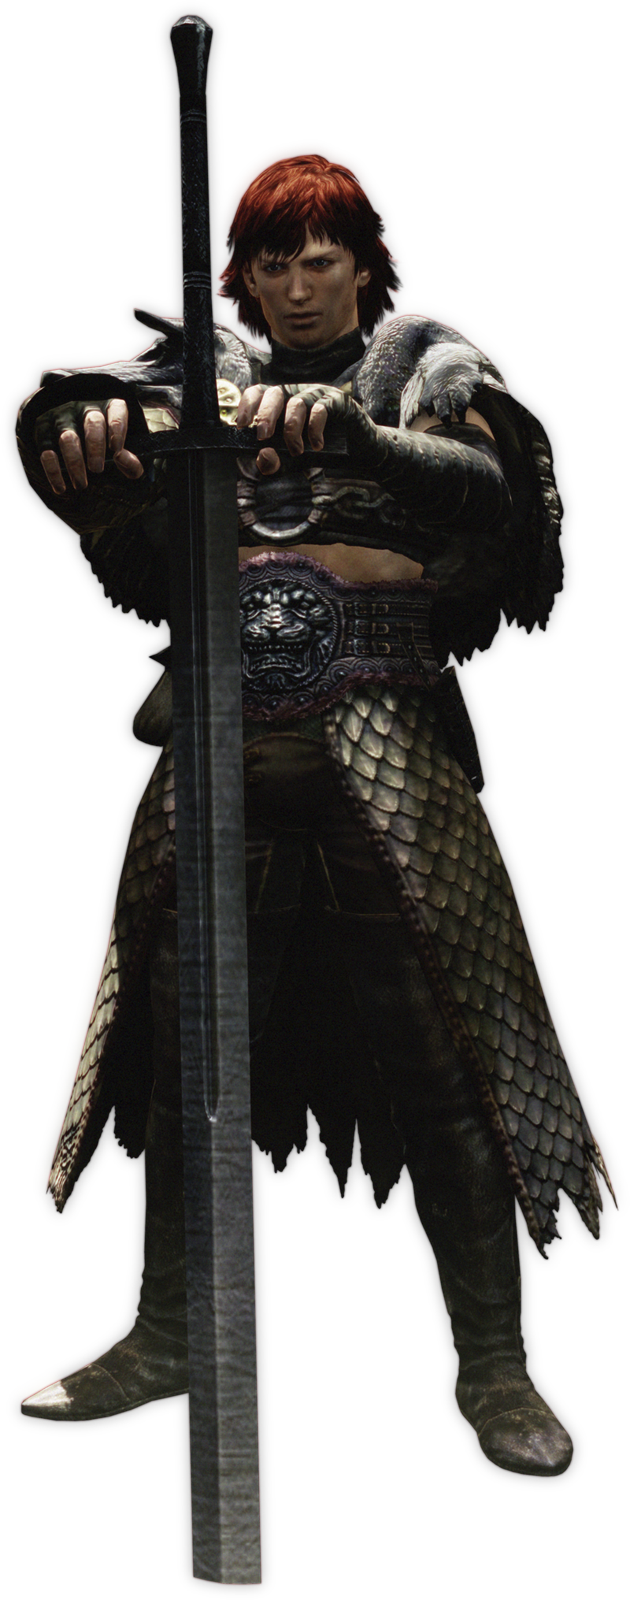 Png warrior. Transparent images pluspng dd